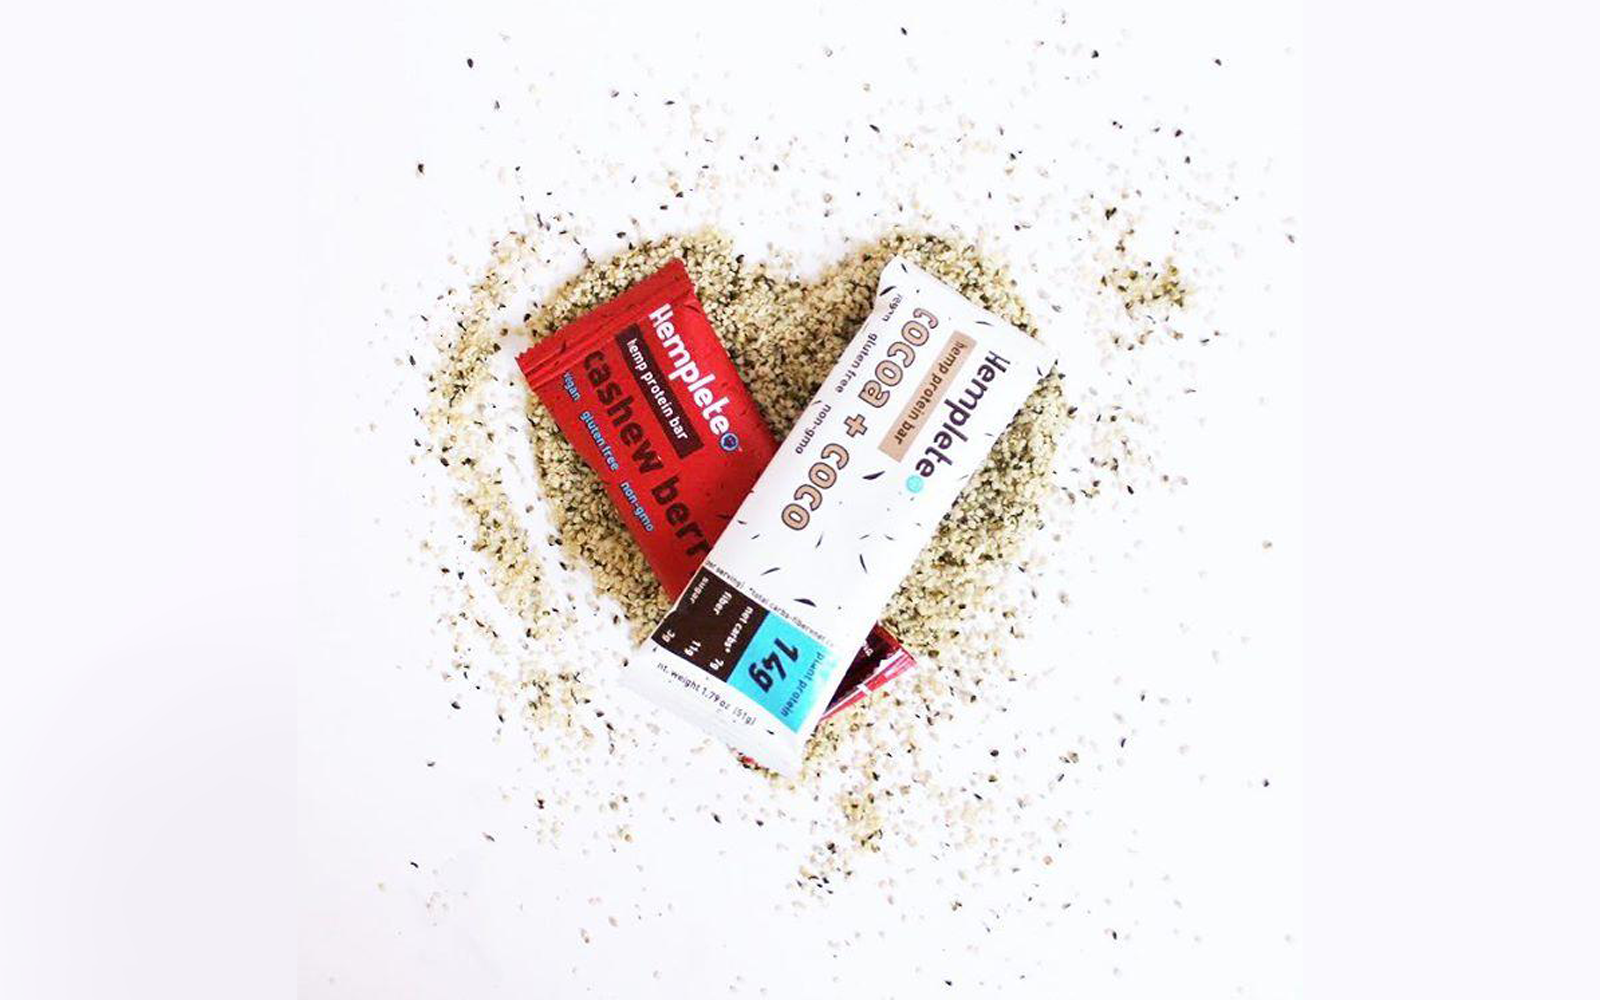 Sustainable hemp protein bars made with healthy, plant-based ingredients